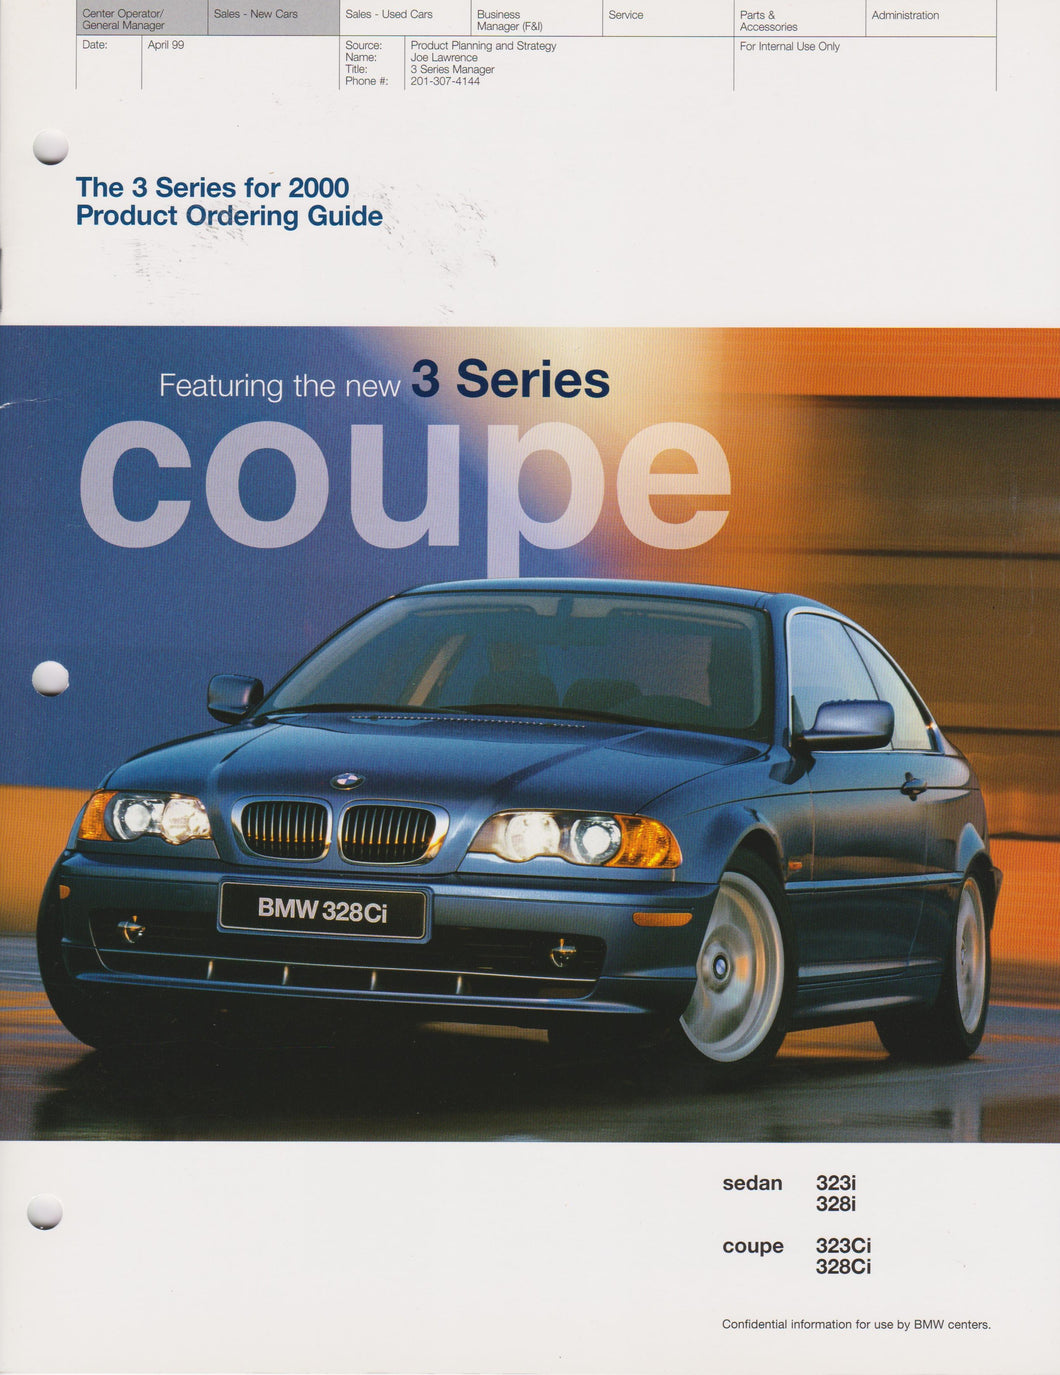 Brochure - The 3 Series for 2000 Product Ordering Guide